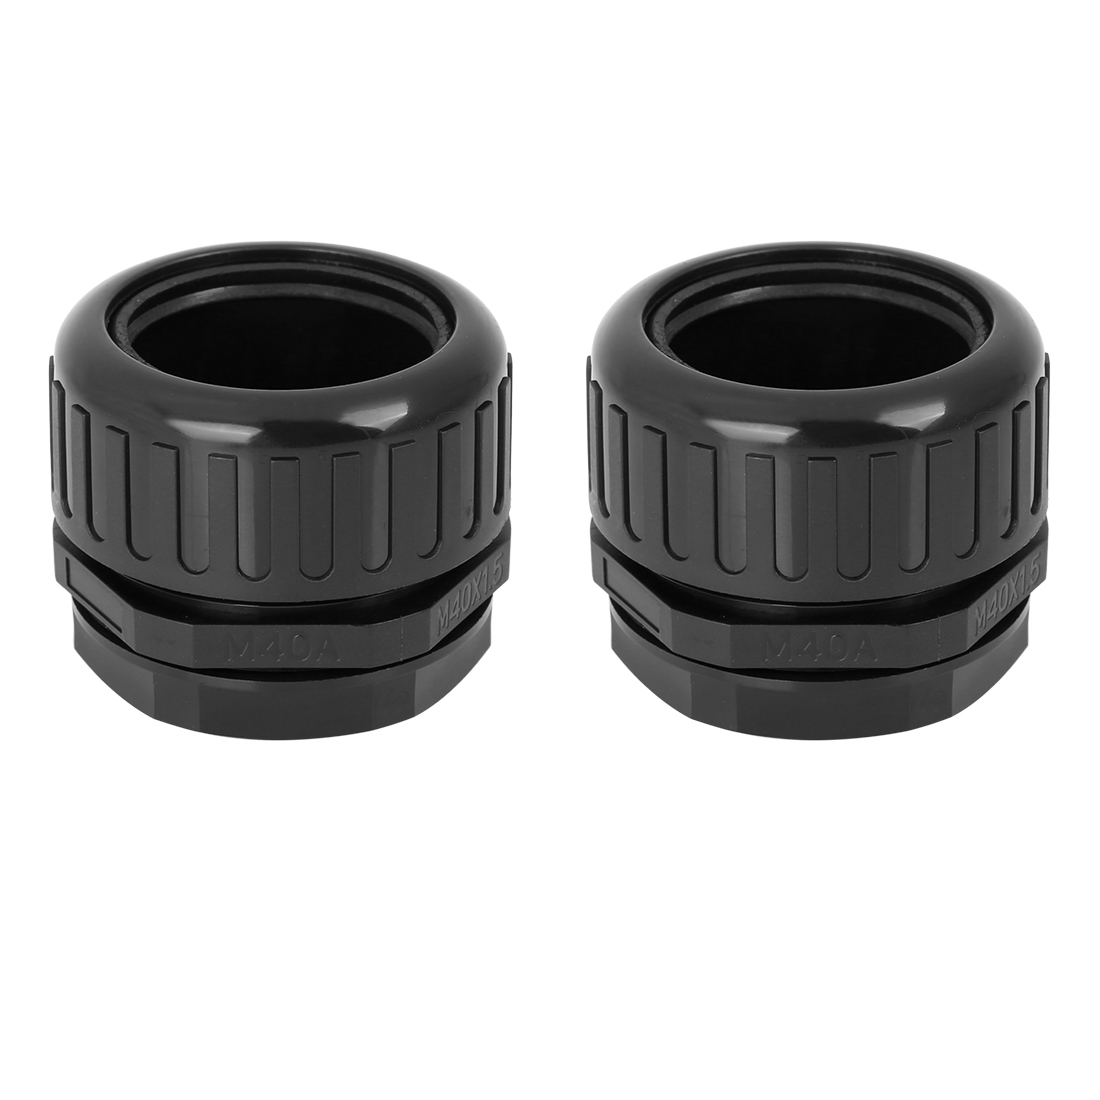 2pcs Cable Gland Wire Gland Waterproof Adjustable Corrugated Tube Connectors